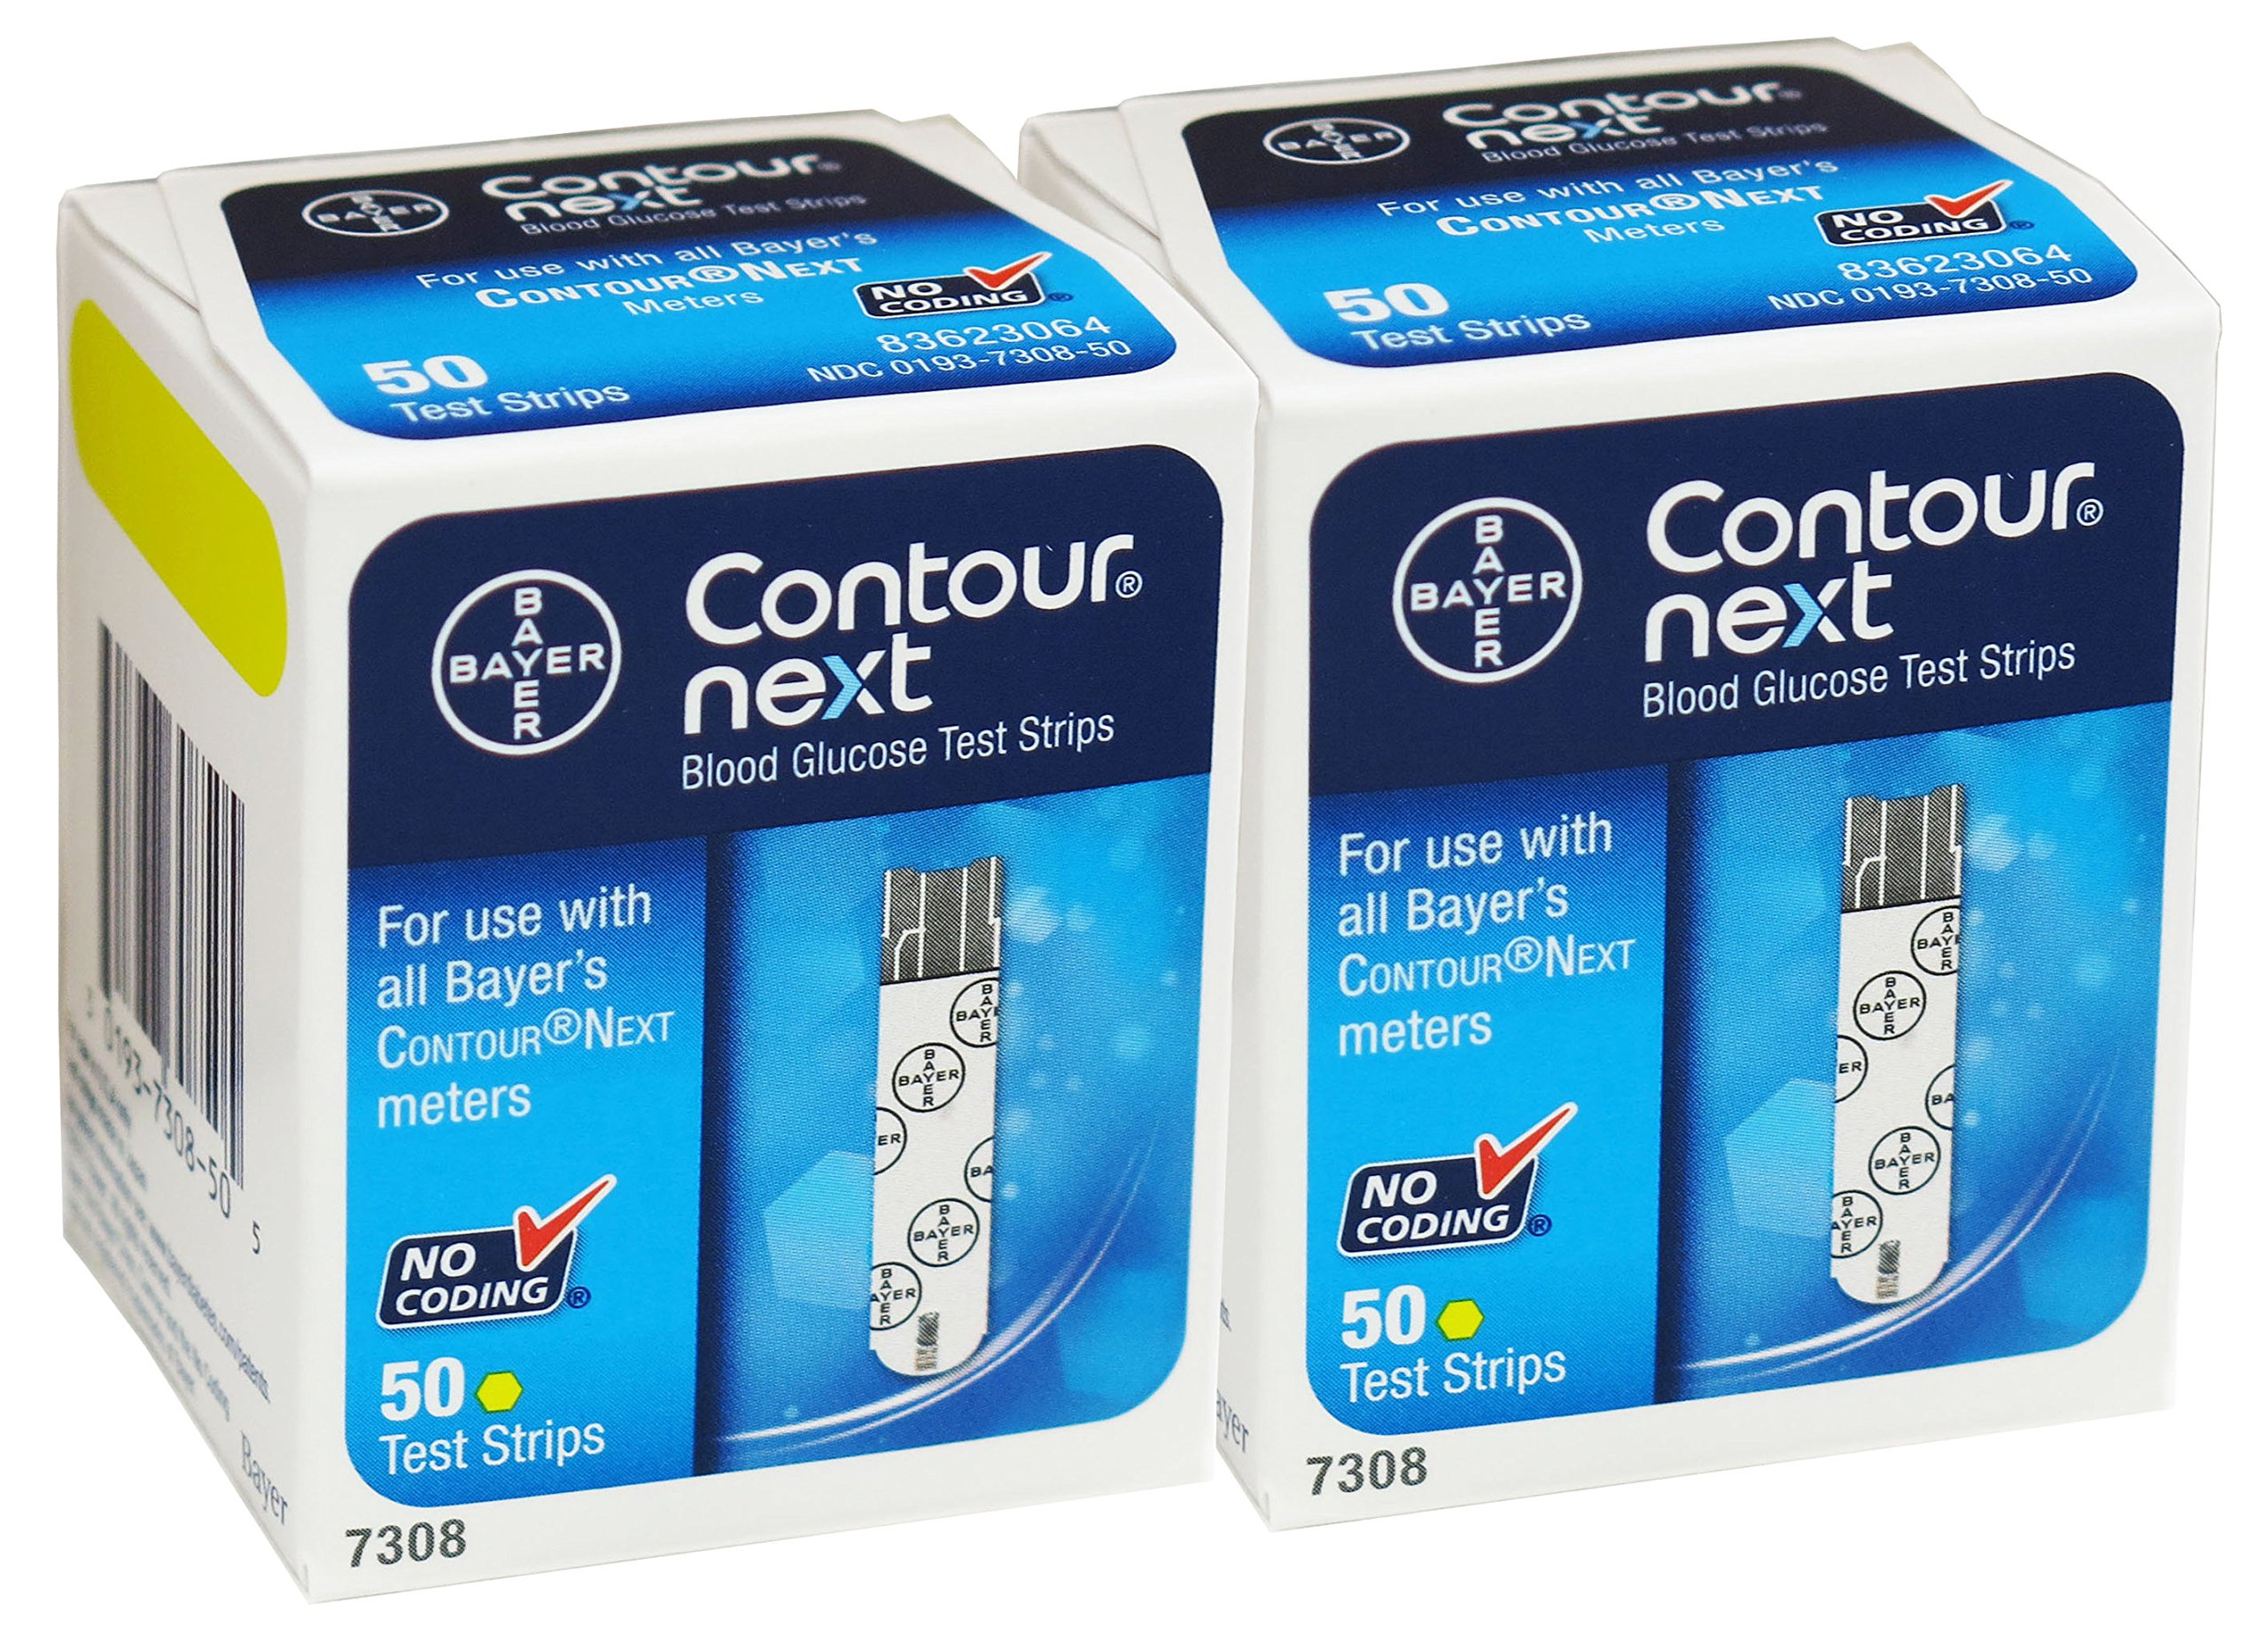 Give fast and accurate results within 5-second - Bayer Contour Next Blood Glucose Test Strips, 100 Ea by Bayer